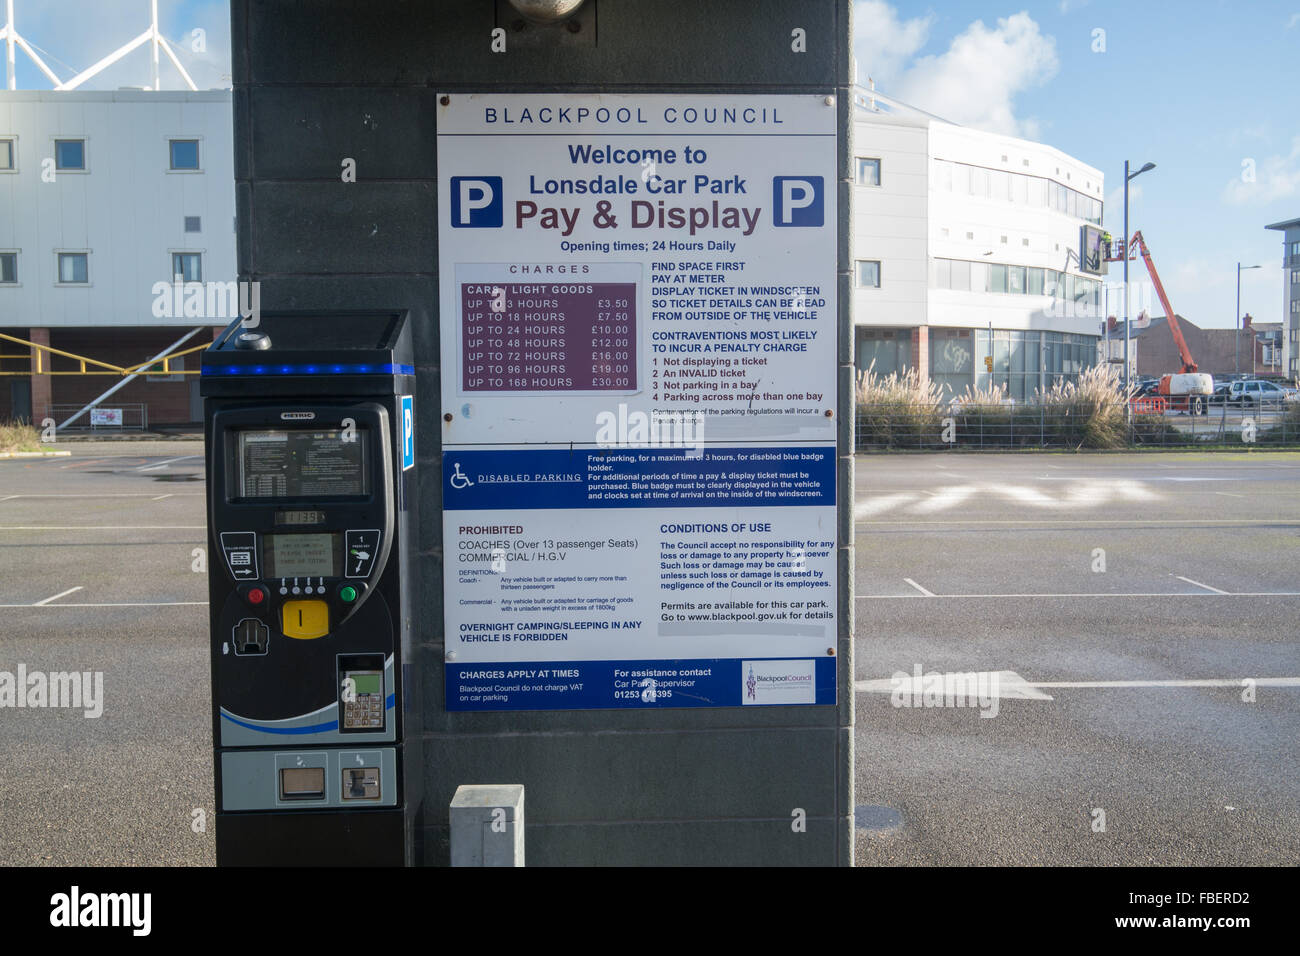 Parking ticket machine showing the charges for parking at Bloomfield road,car park - Stock Image